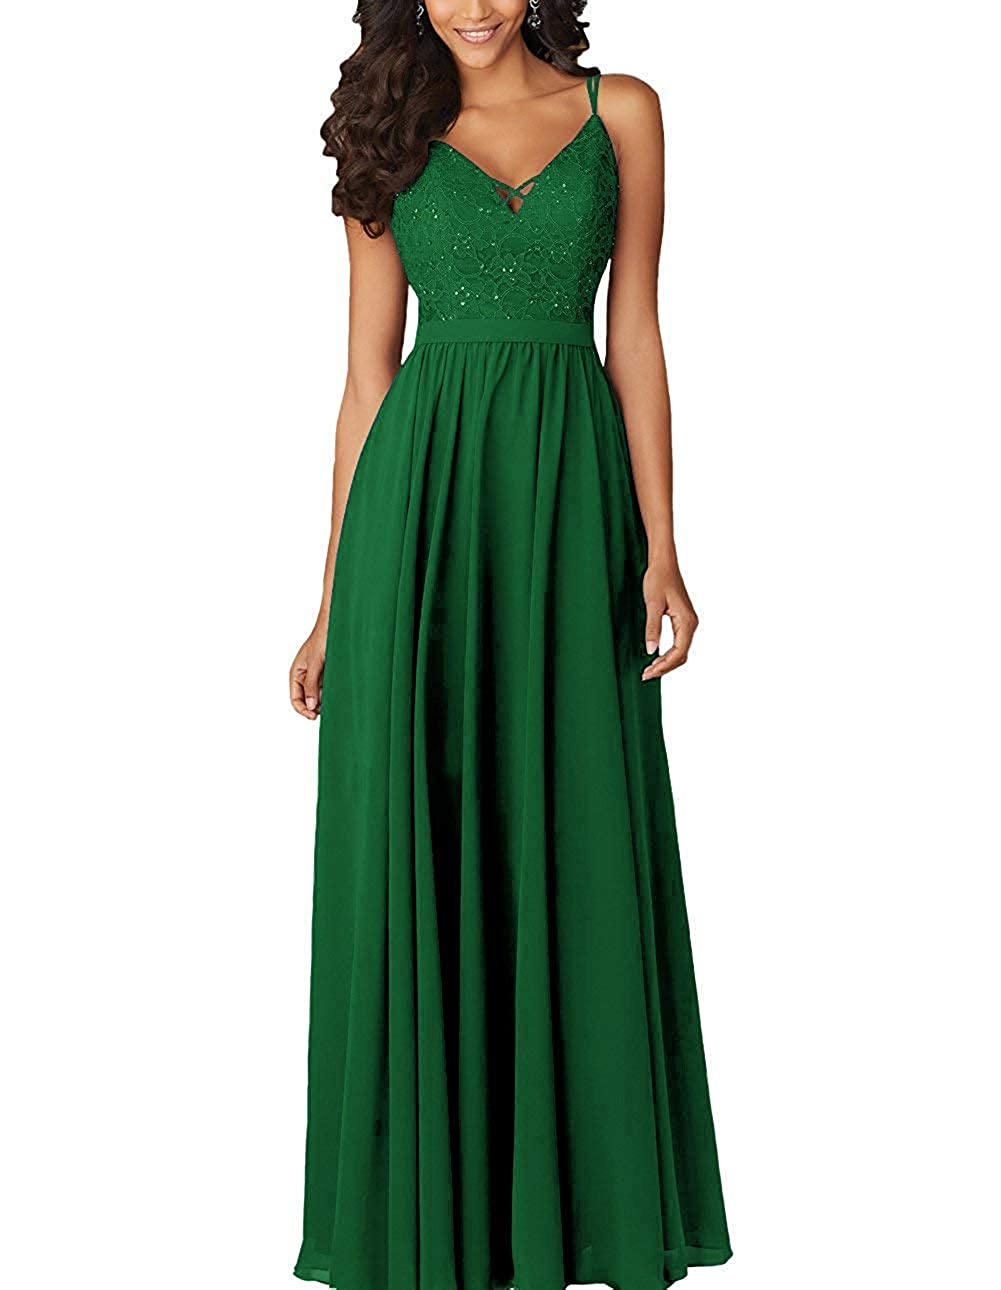 Green ZLQQ Womens Bridesmaid Dresses Long Beaded Formal Spaghetti Strap Evening Party Gowns